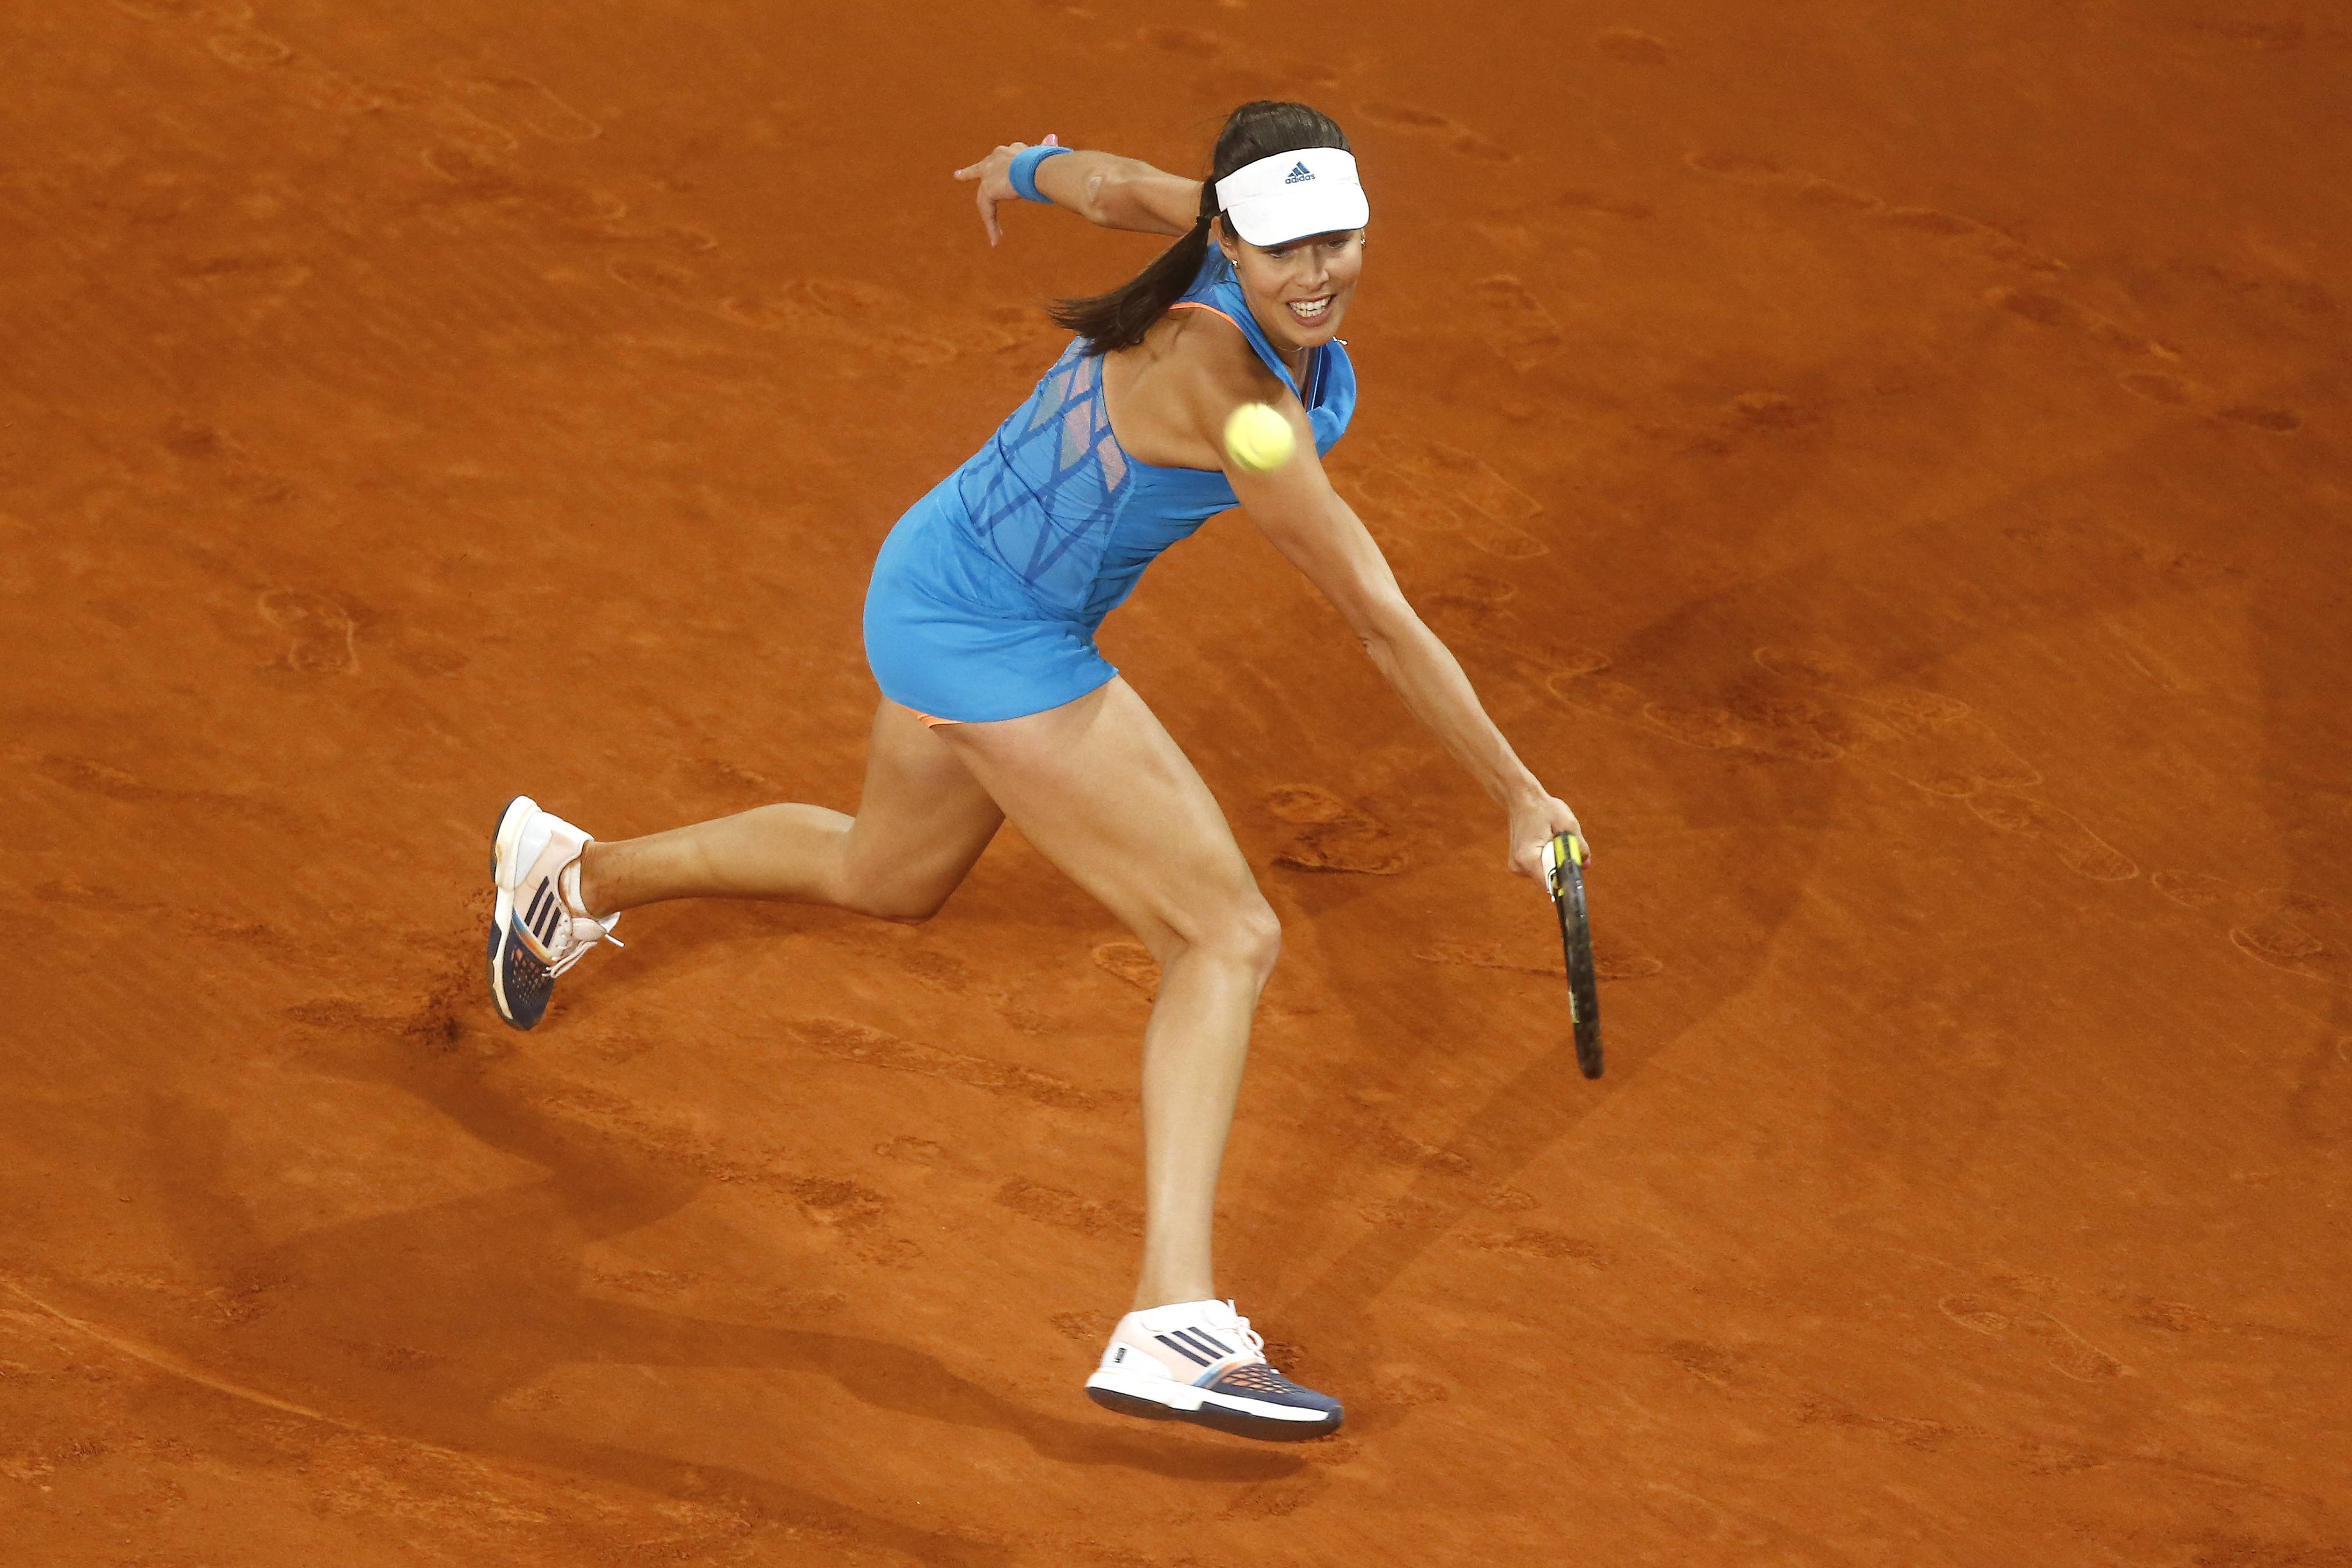 Ana Ivanovic from Serbia returns the ball during a Madrid Open tennis tournament match against Bojana Jovanovski from Serbia, in Madrid, Spain, Wednesday, May 7, 2014.